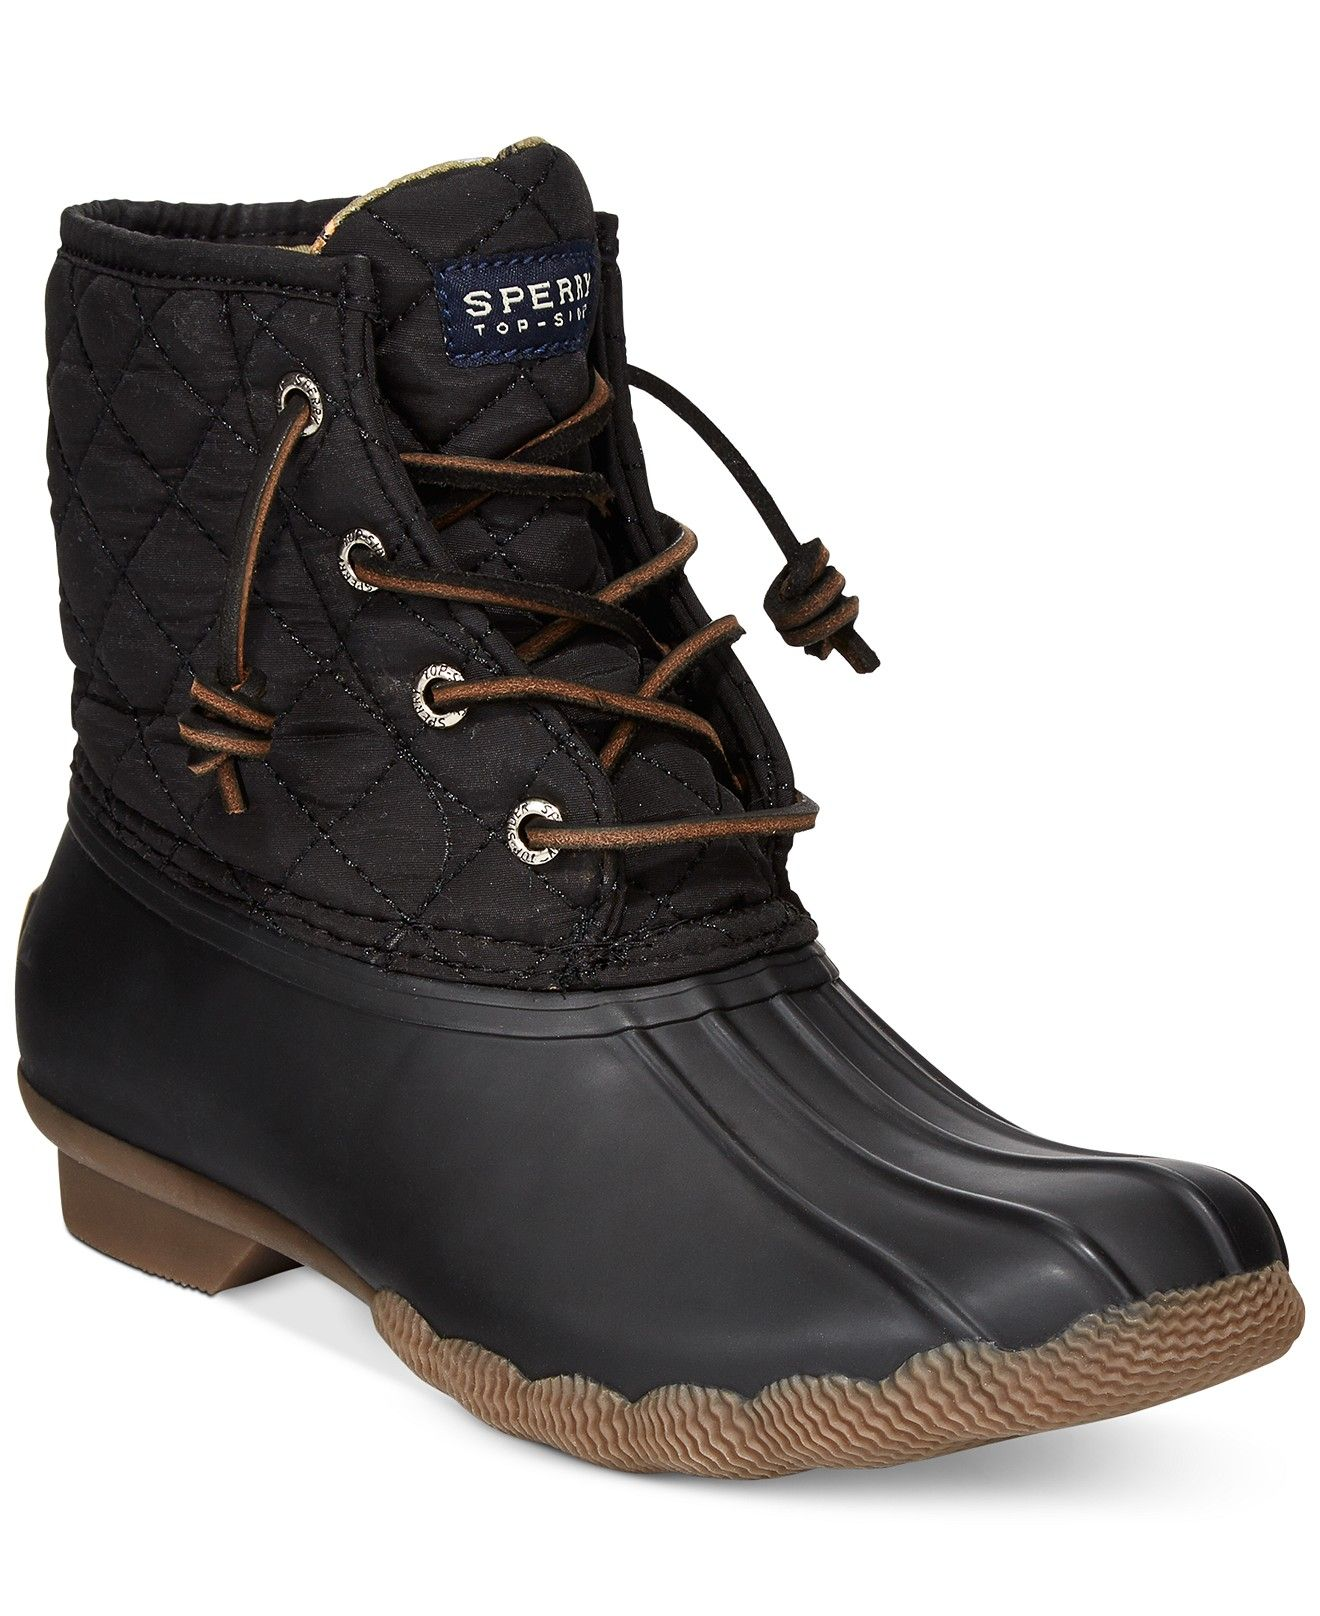 3afcdadc719 Sperry Women's Saltwater Duck Booties - Boots - Shoes - Macy's | My ...